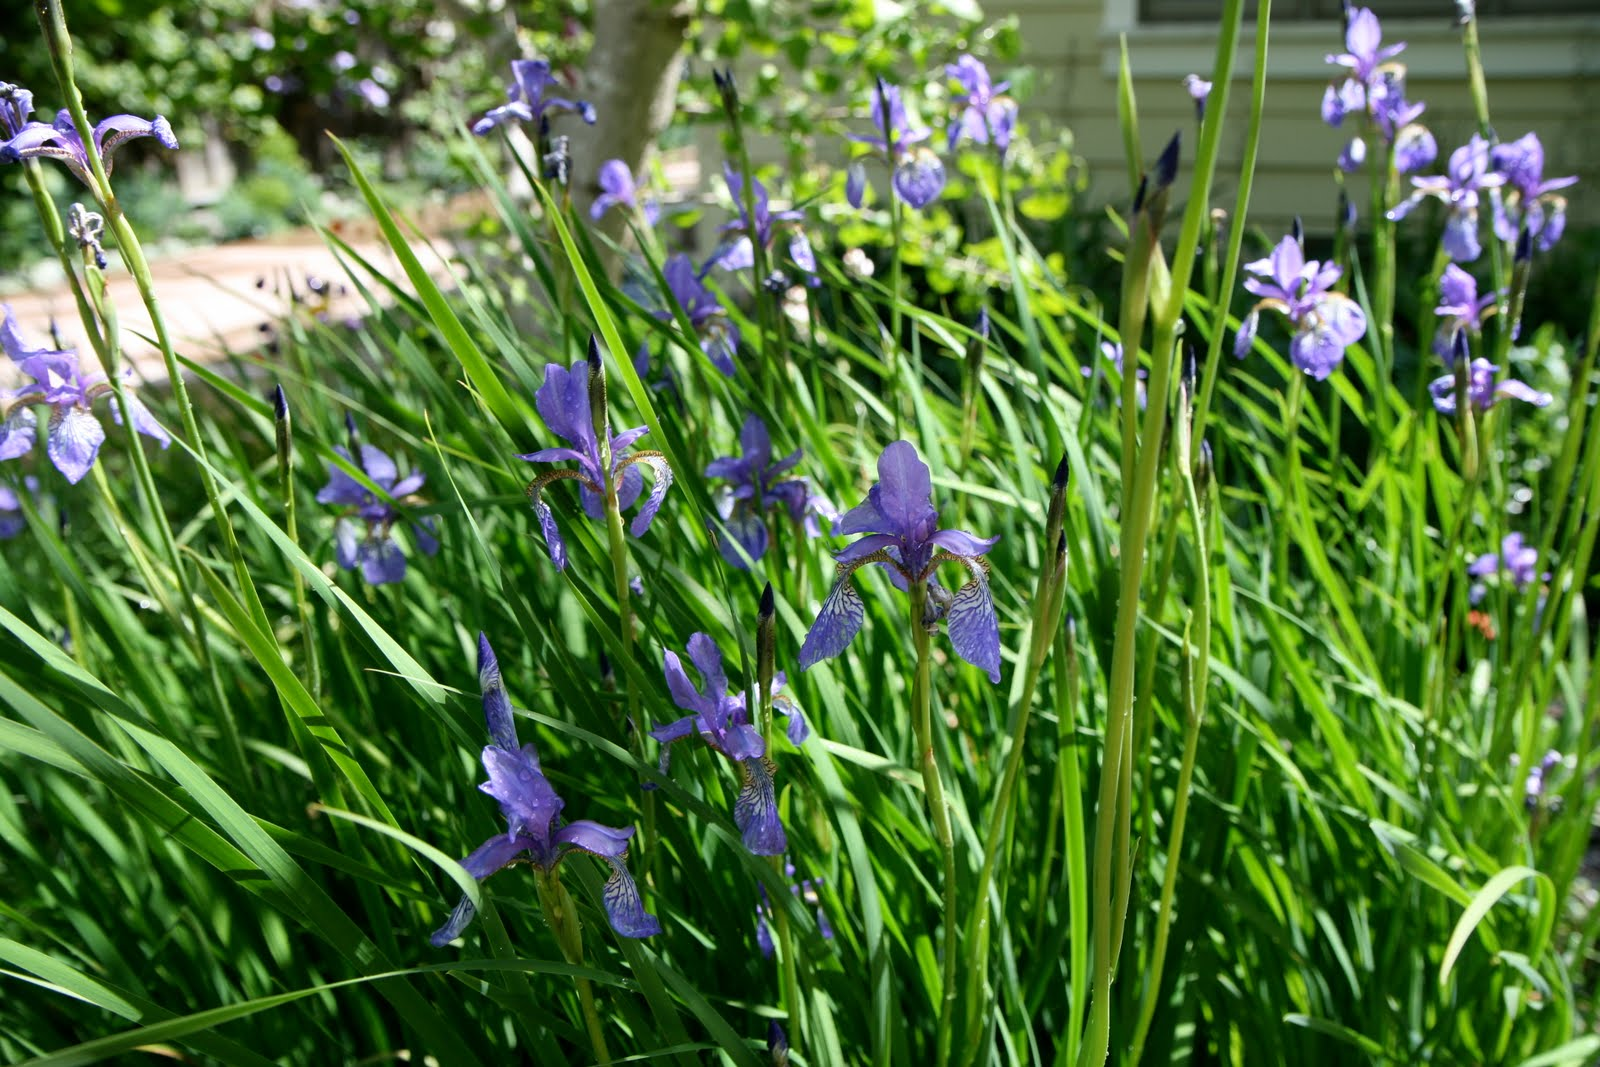 Musings of a garden lover april 2010 when they are not flowering they look like slumps of coarse grass so i plant them next to plants with contrasting foliage forms siberian iris izmirmasajfo